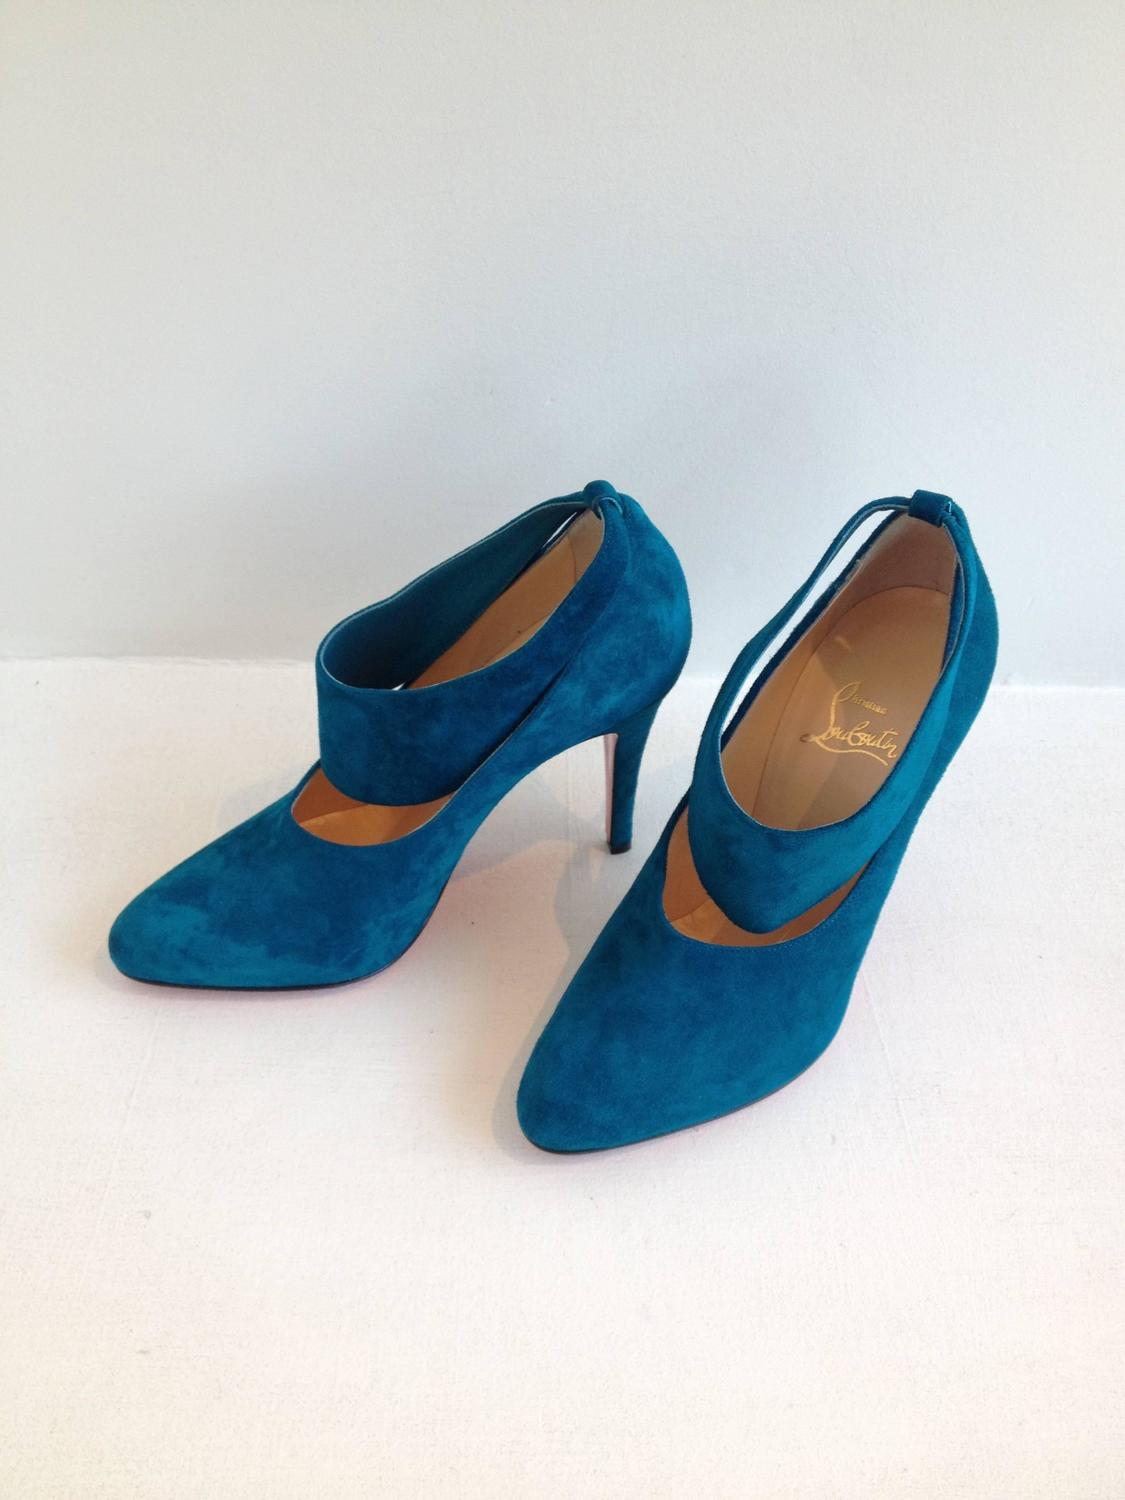 Christian Louboutin Peacock Blue Suede Heels At 1stdibs